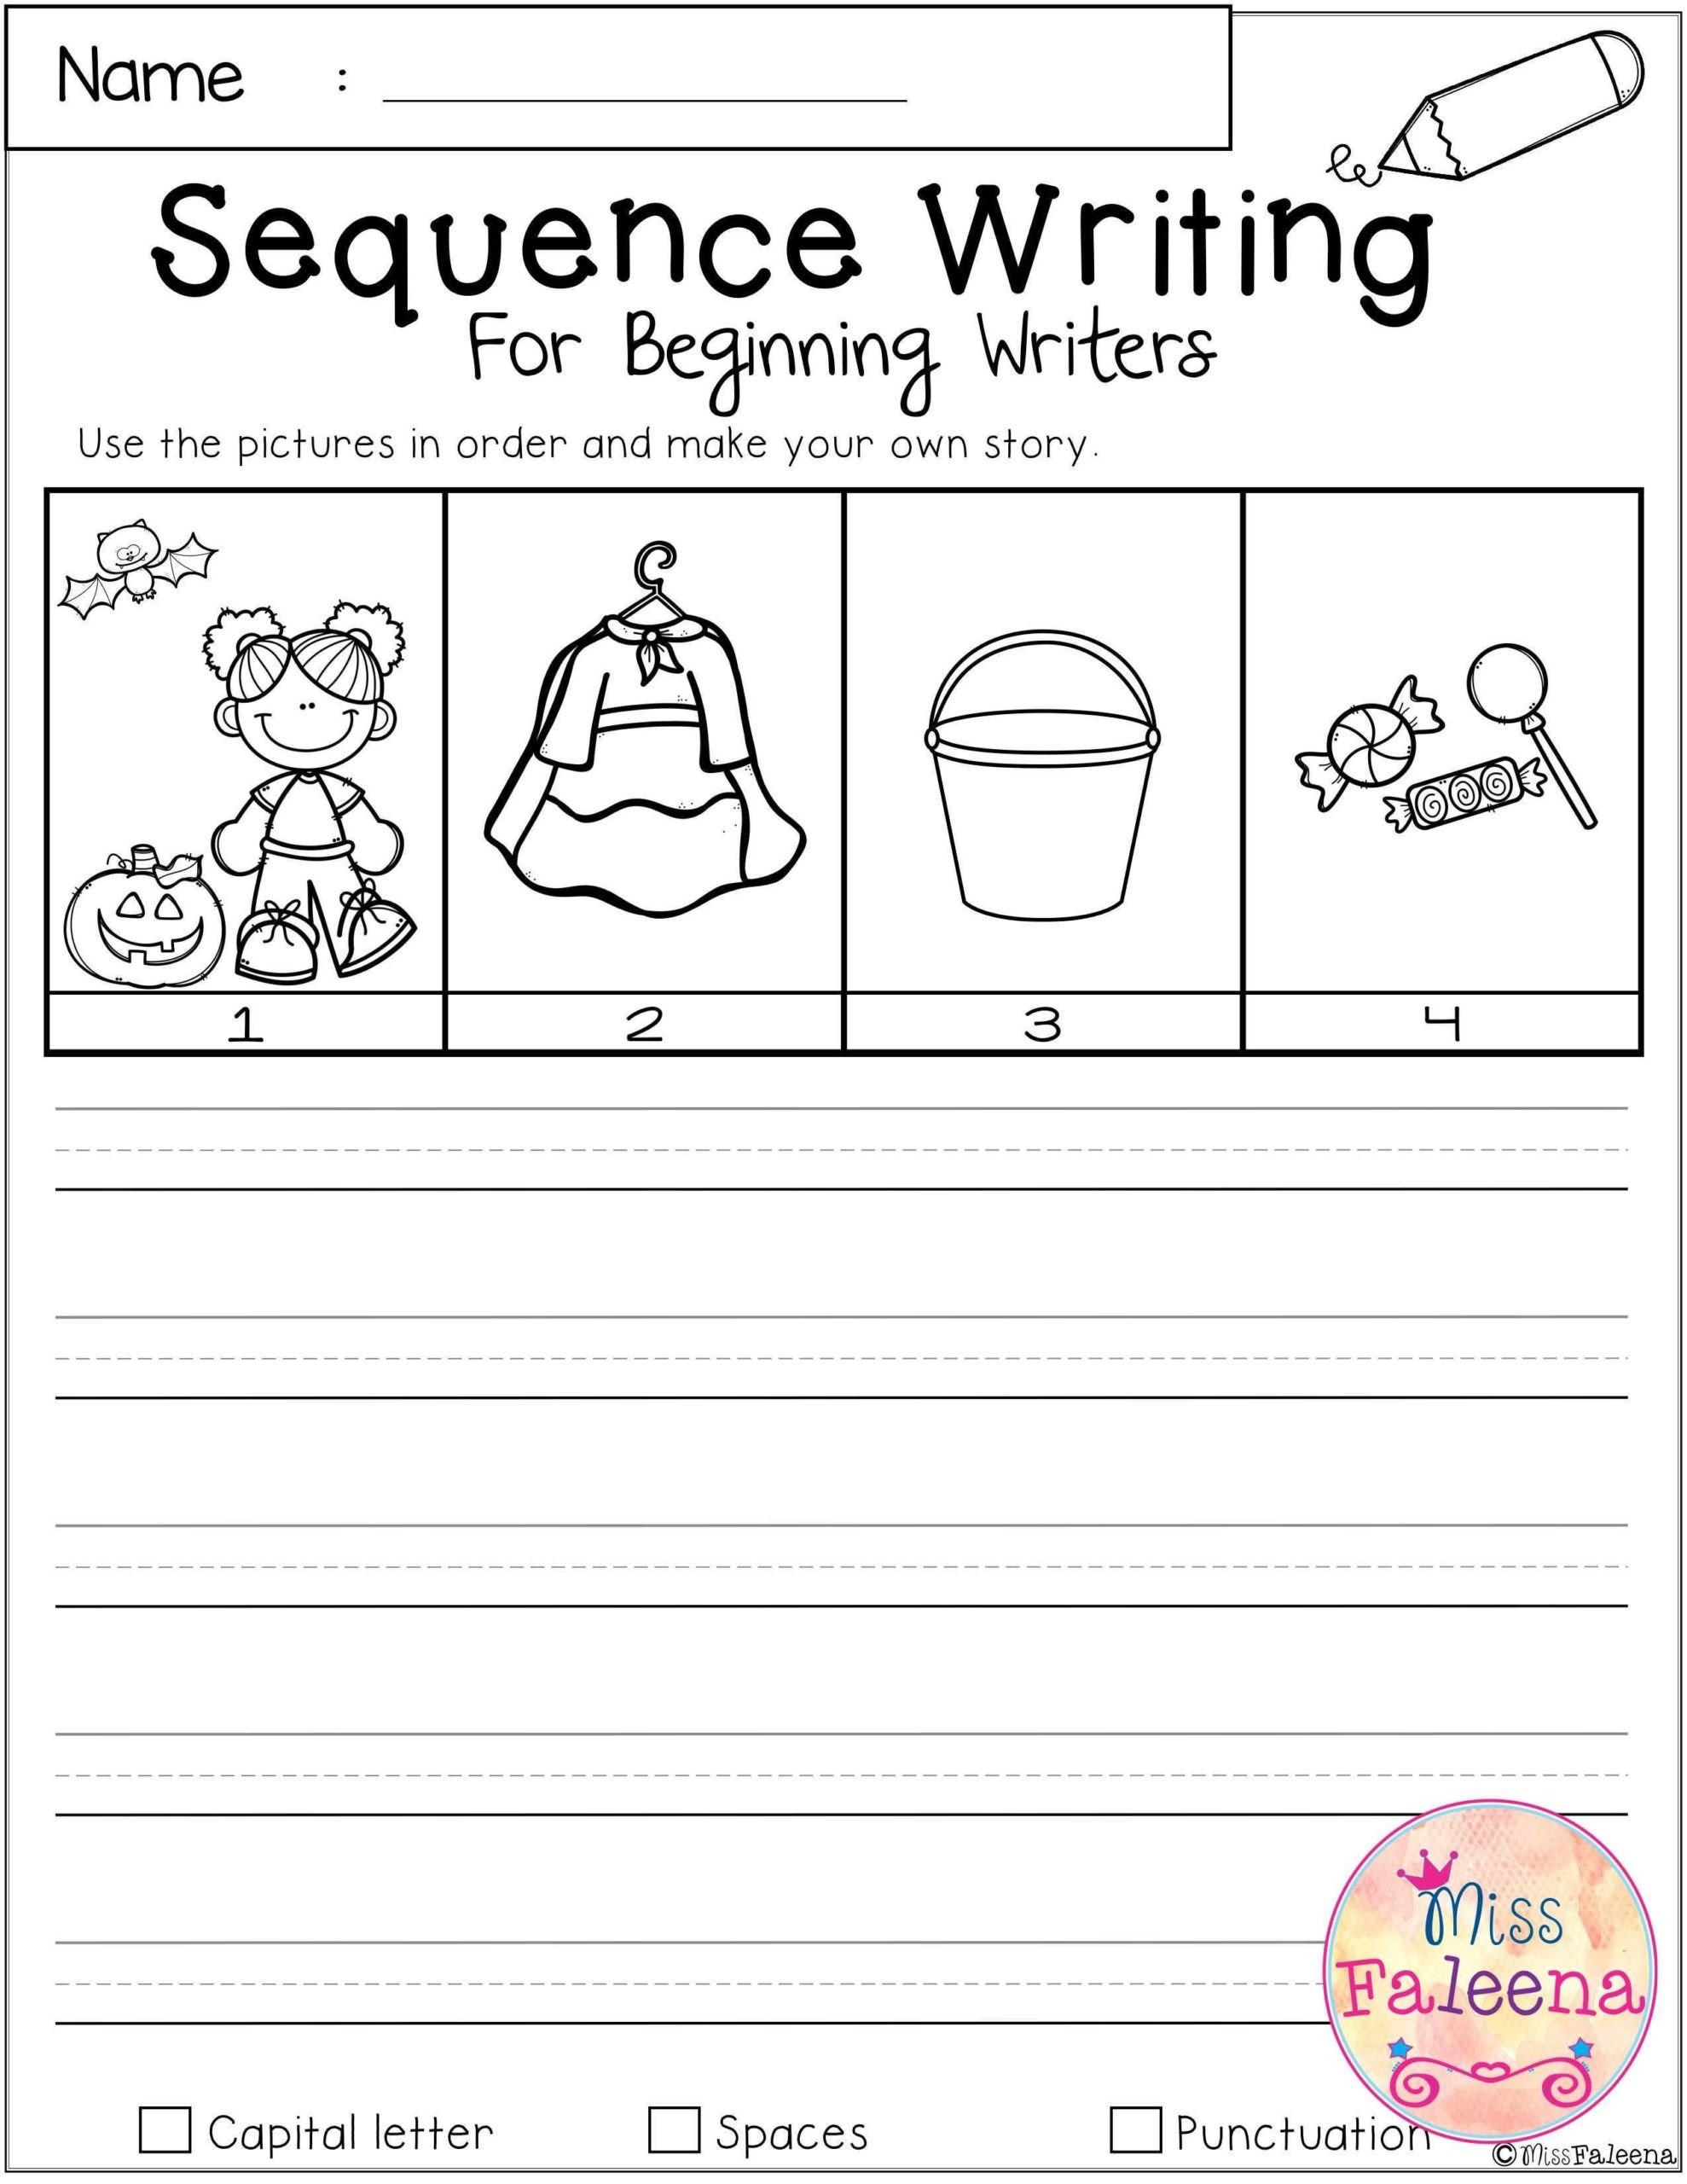 Sequence Worksheets for Kids Worksheet October Sequence Writing for Beginning Writers